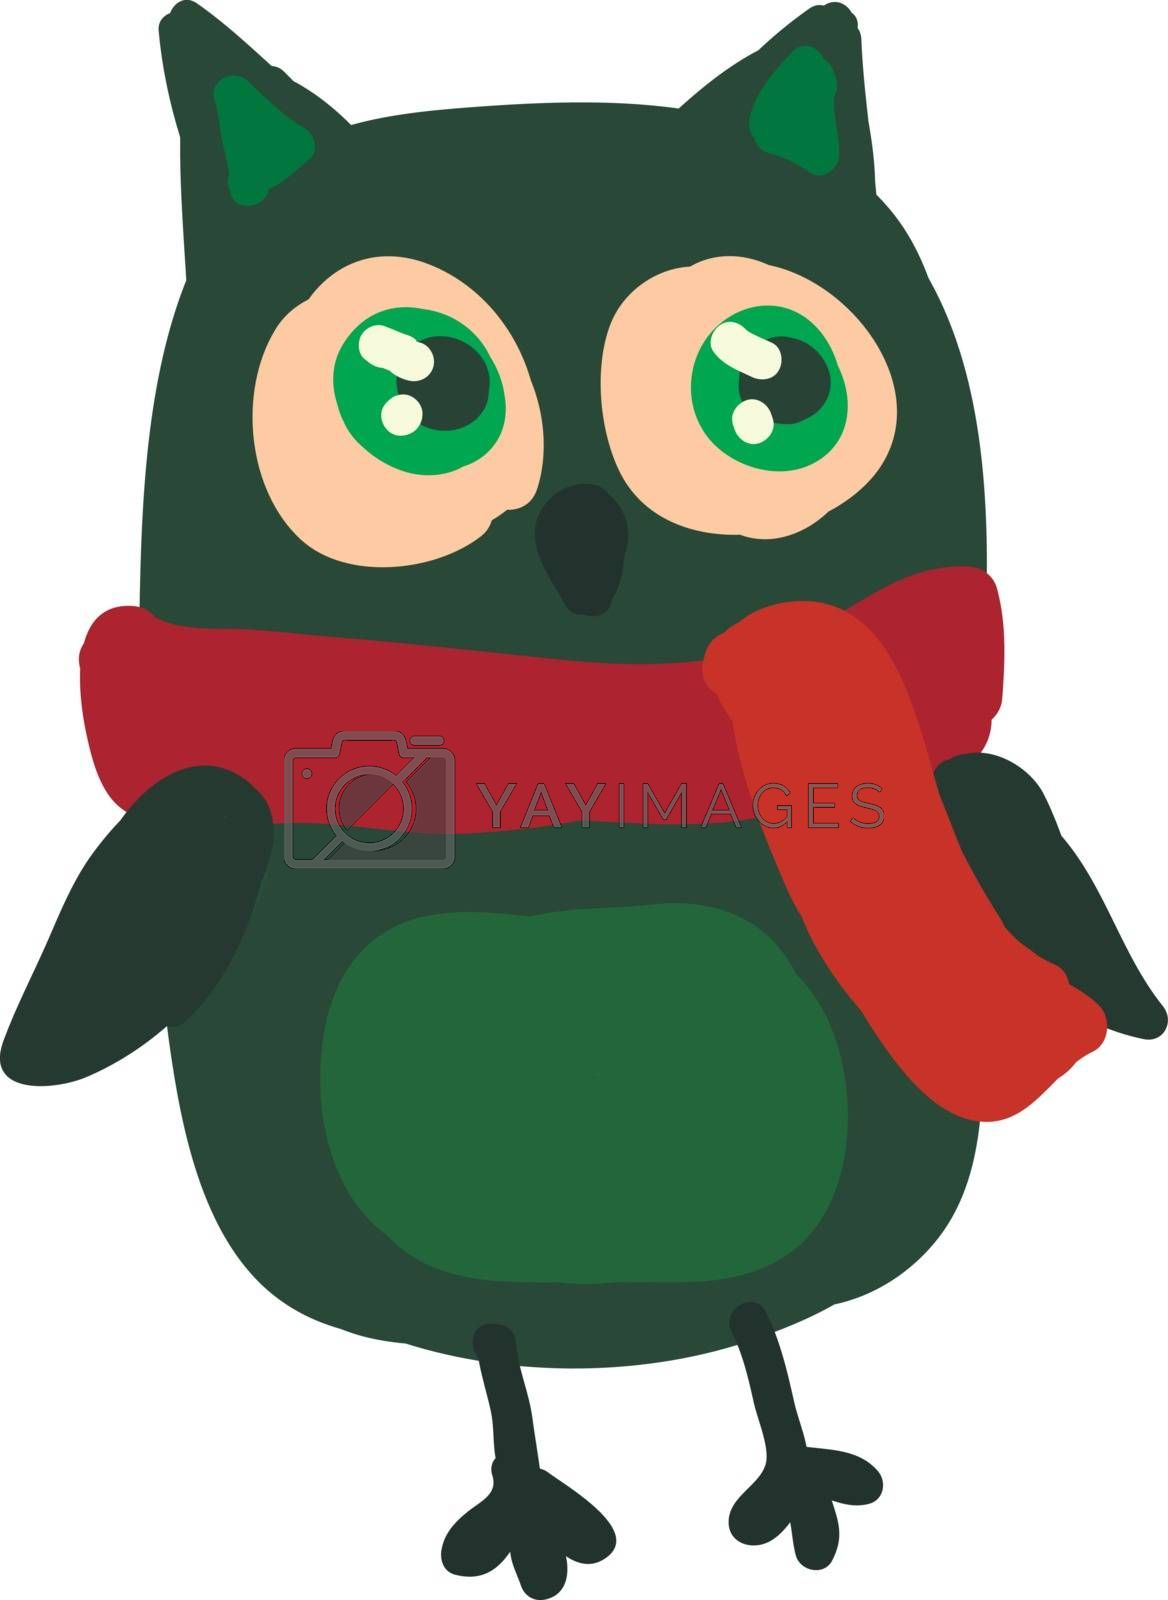 A green owl with pointed ears and glowing green eyes wearing a red scarf vector color drawing or illustration